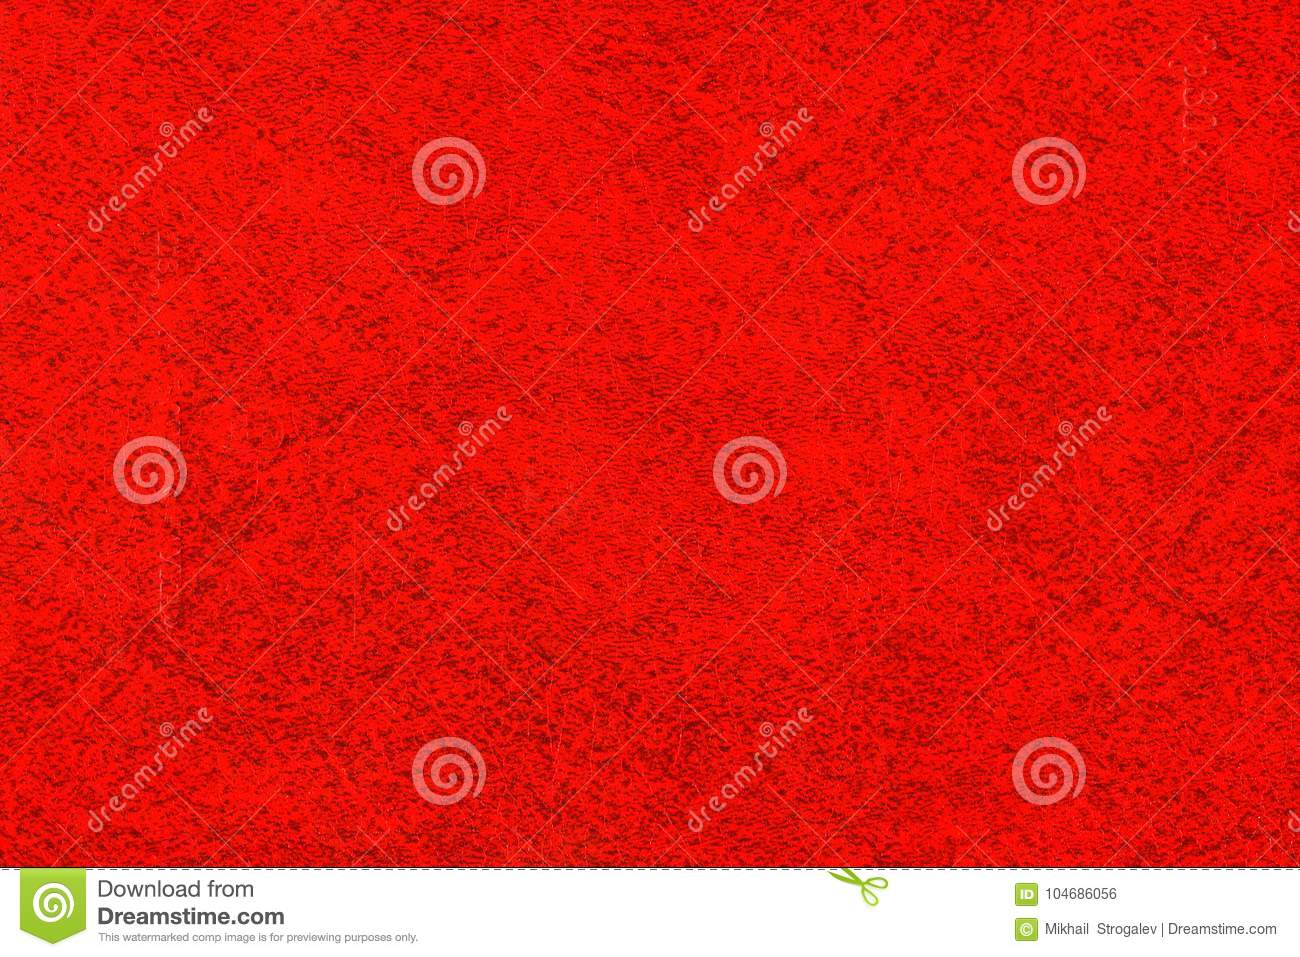 Abstract Book Cover Background : Abstract background card book cover stock photos